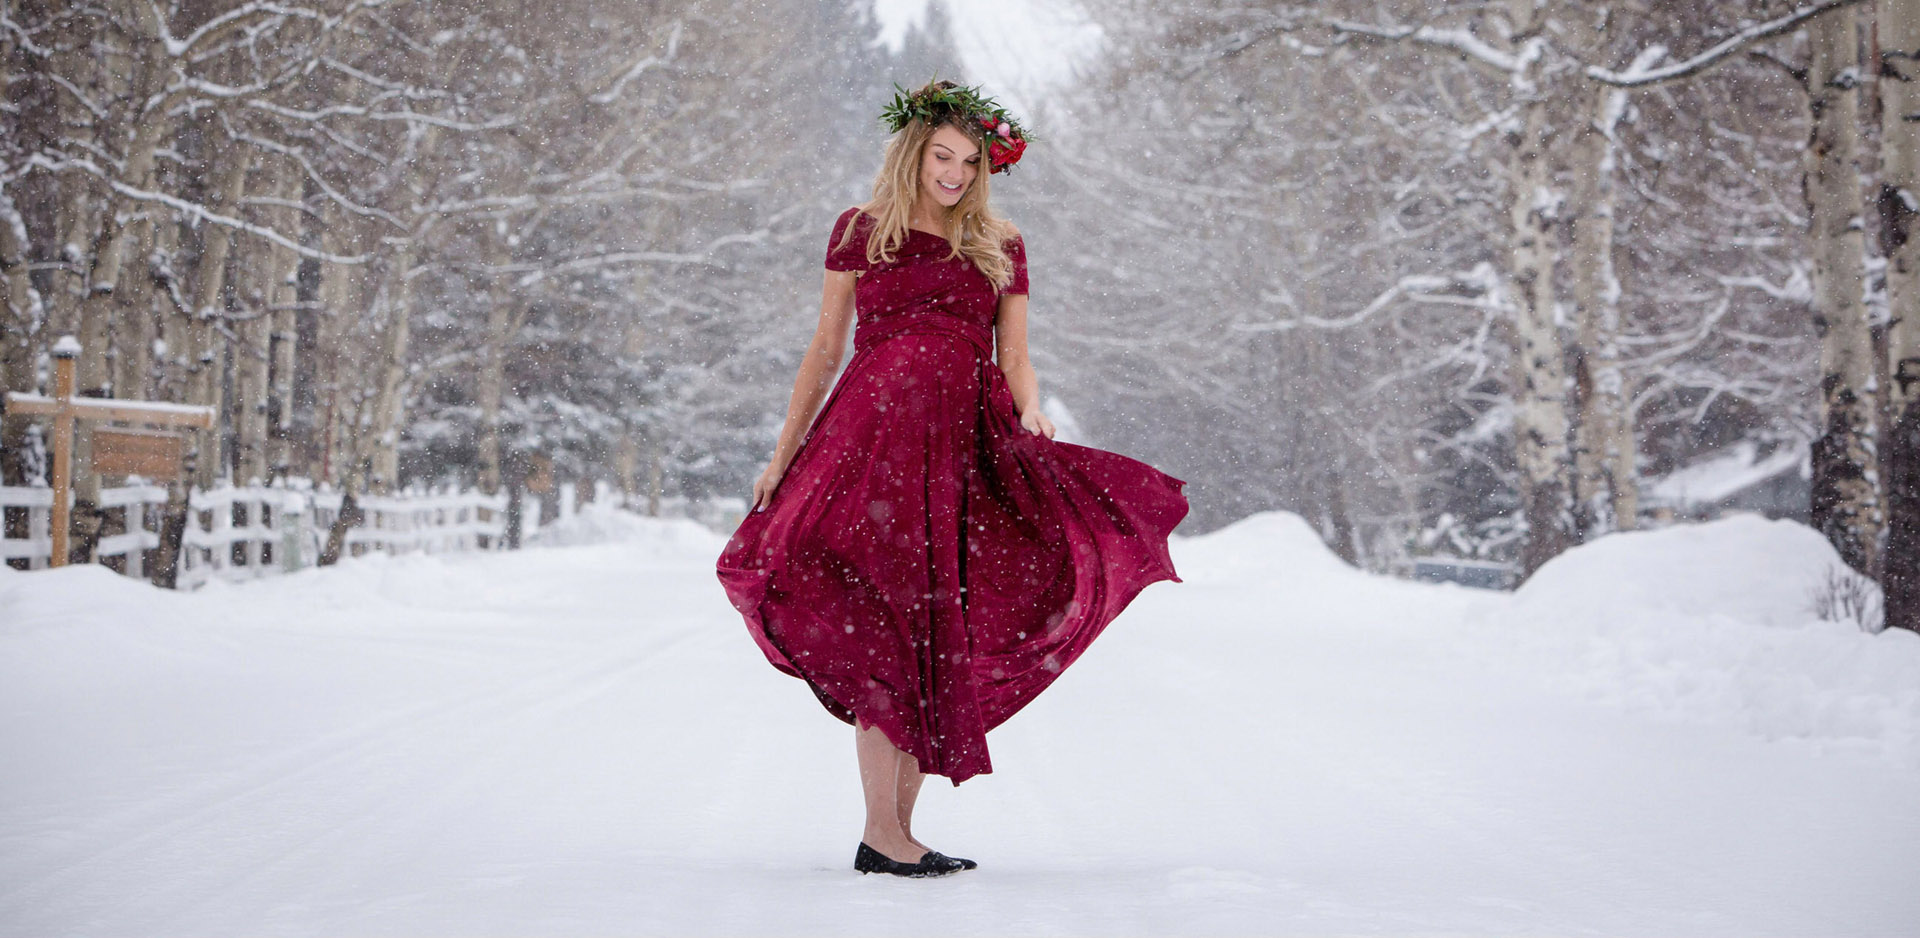 Maternity photo of woman in red dress spinning in snow